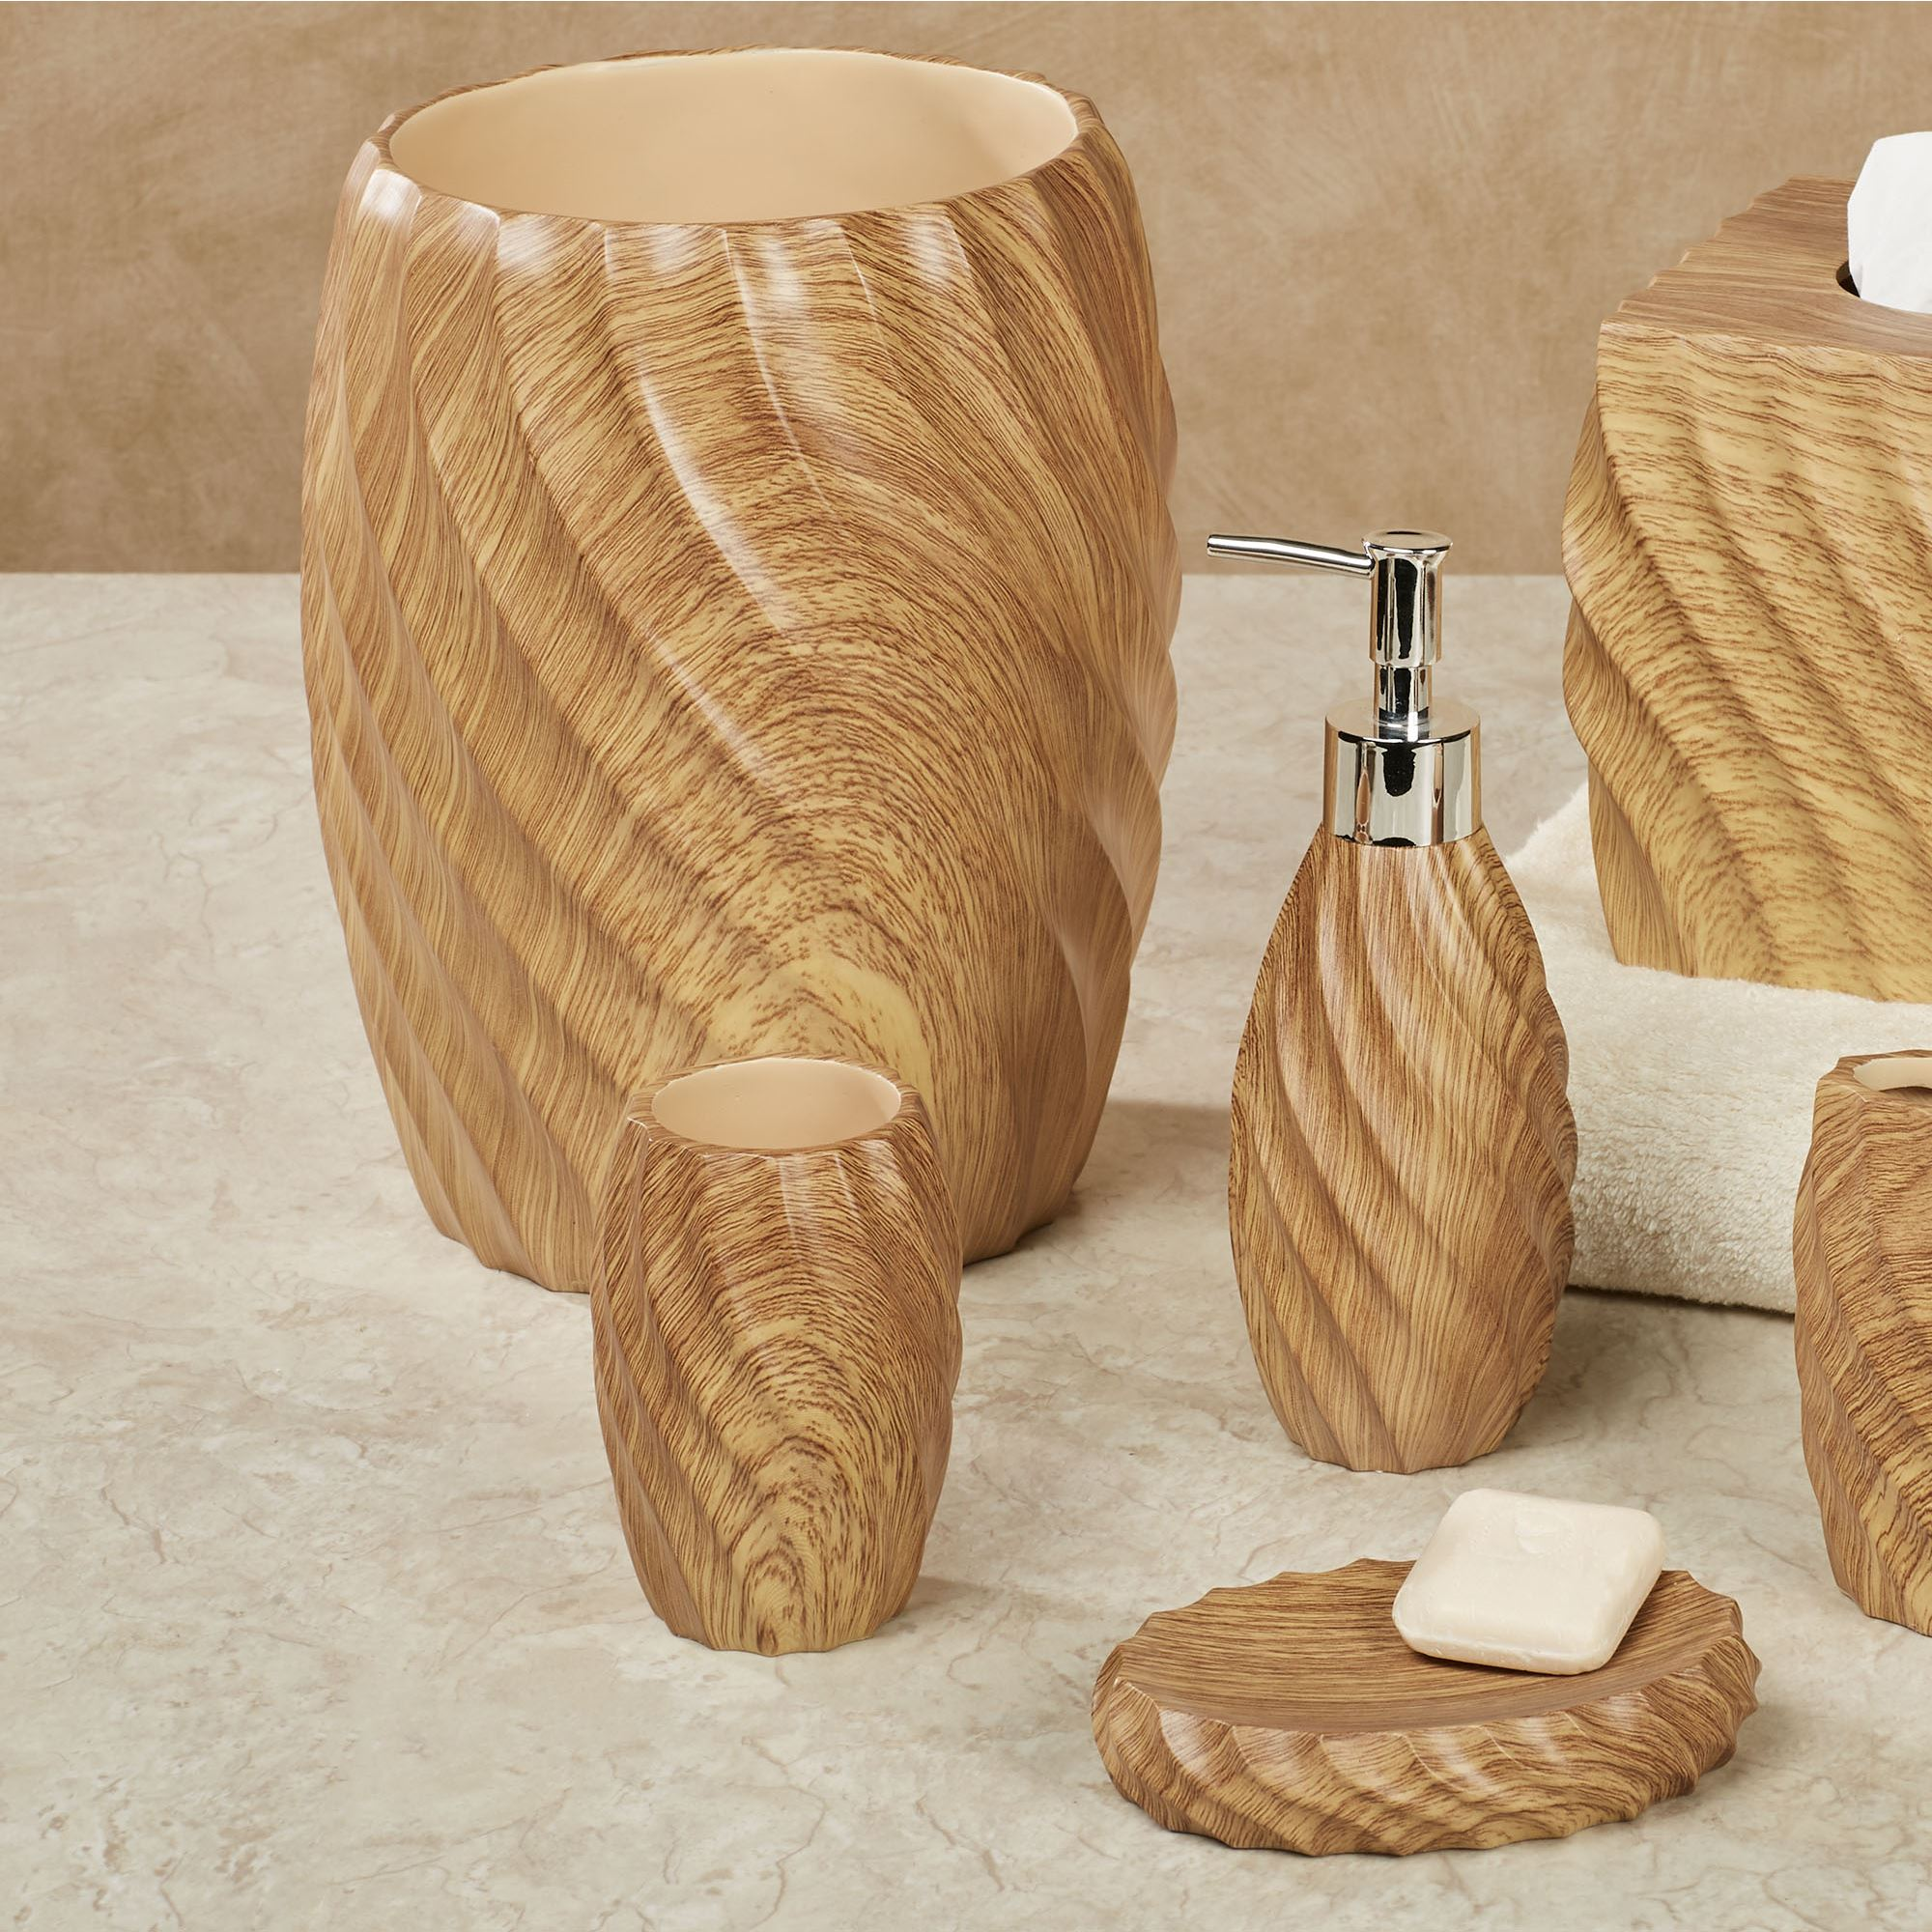 Wood Works Resin Bath Accessories